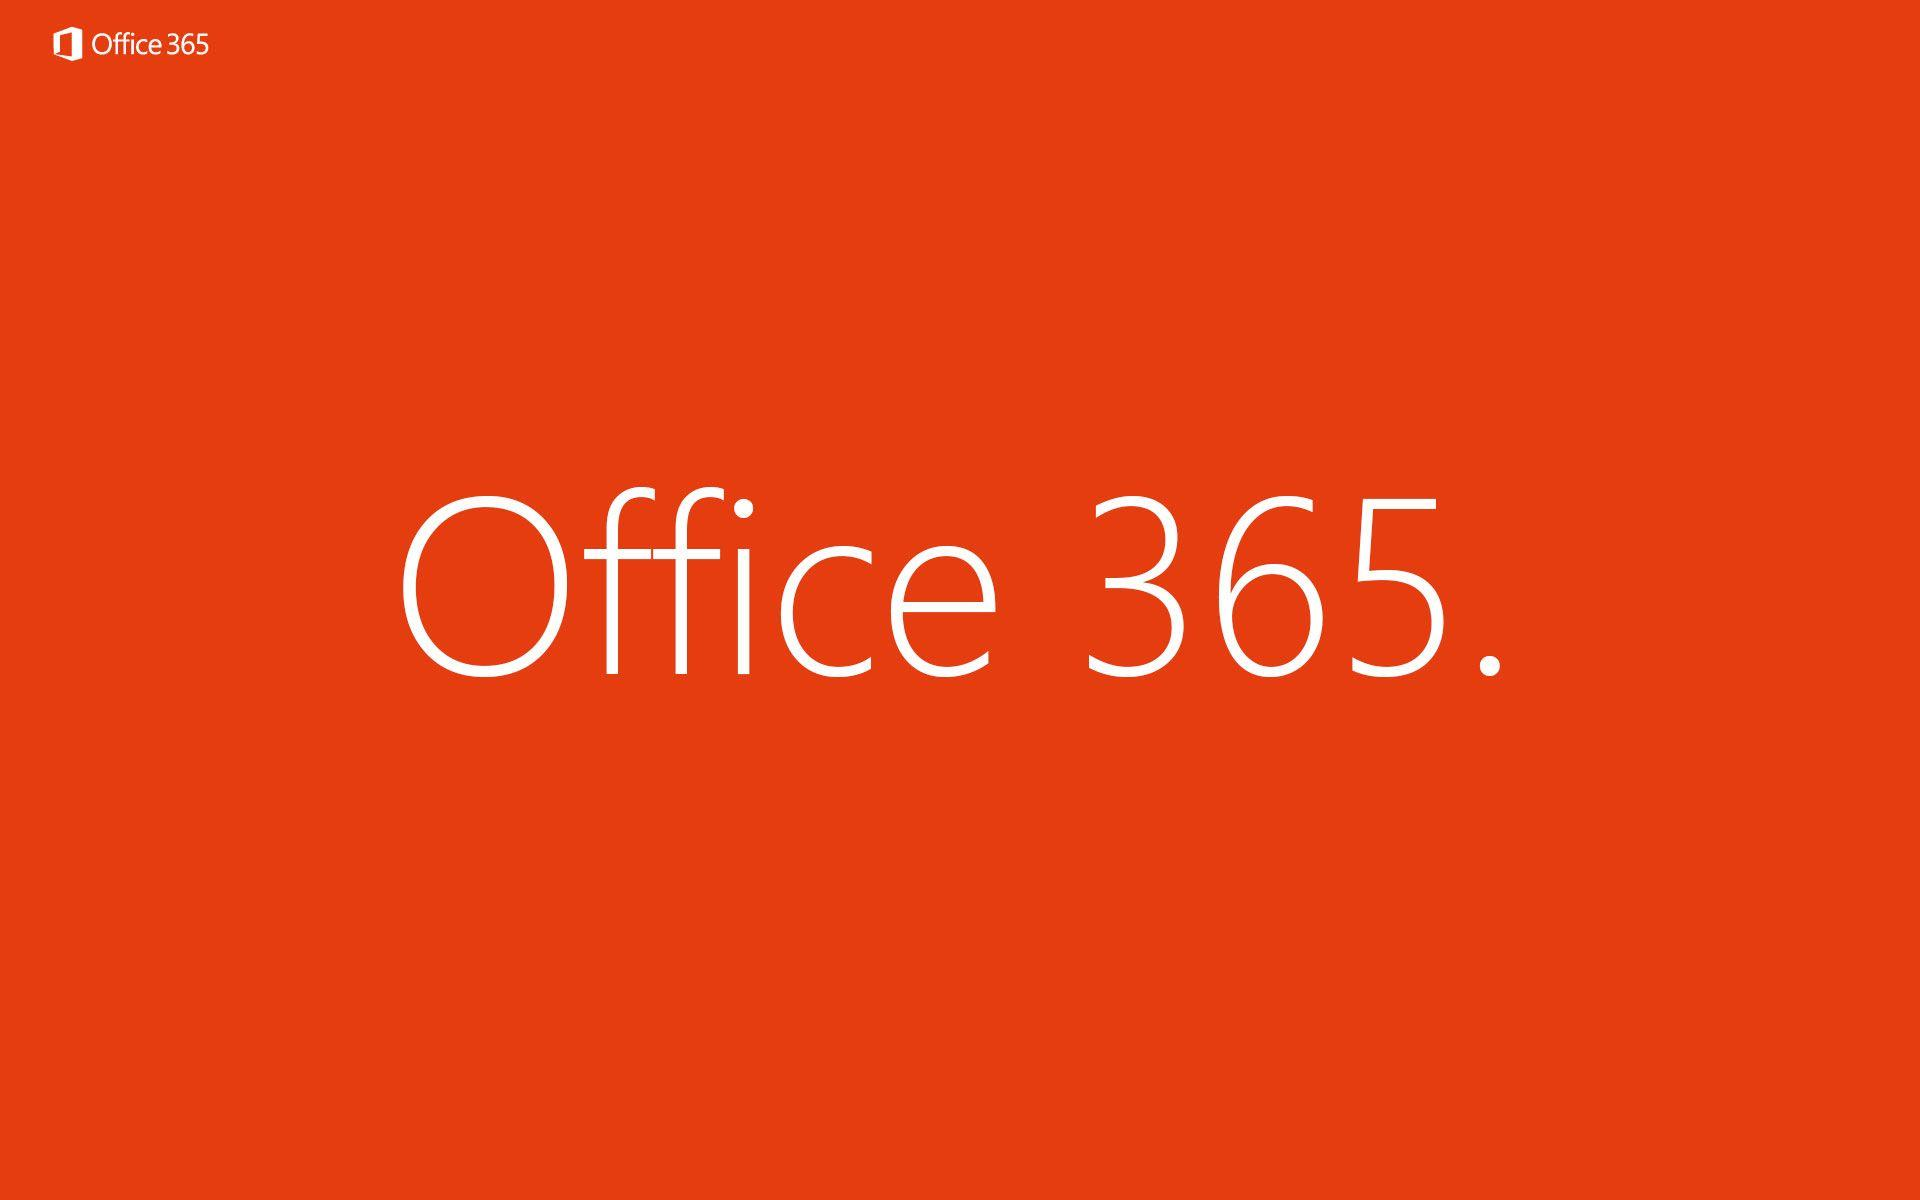 Office 365 Wallpapers Wallpaper Cave